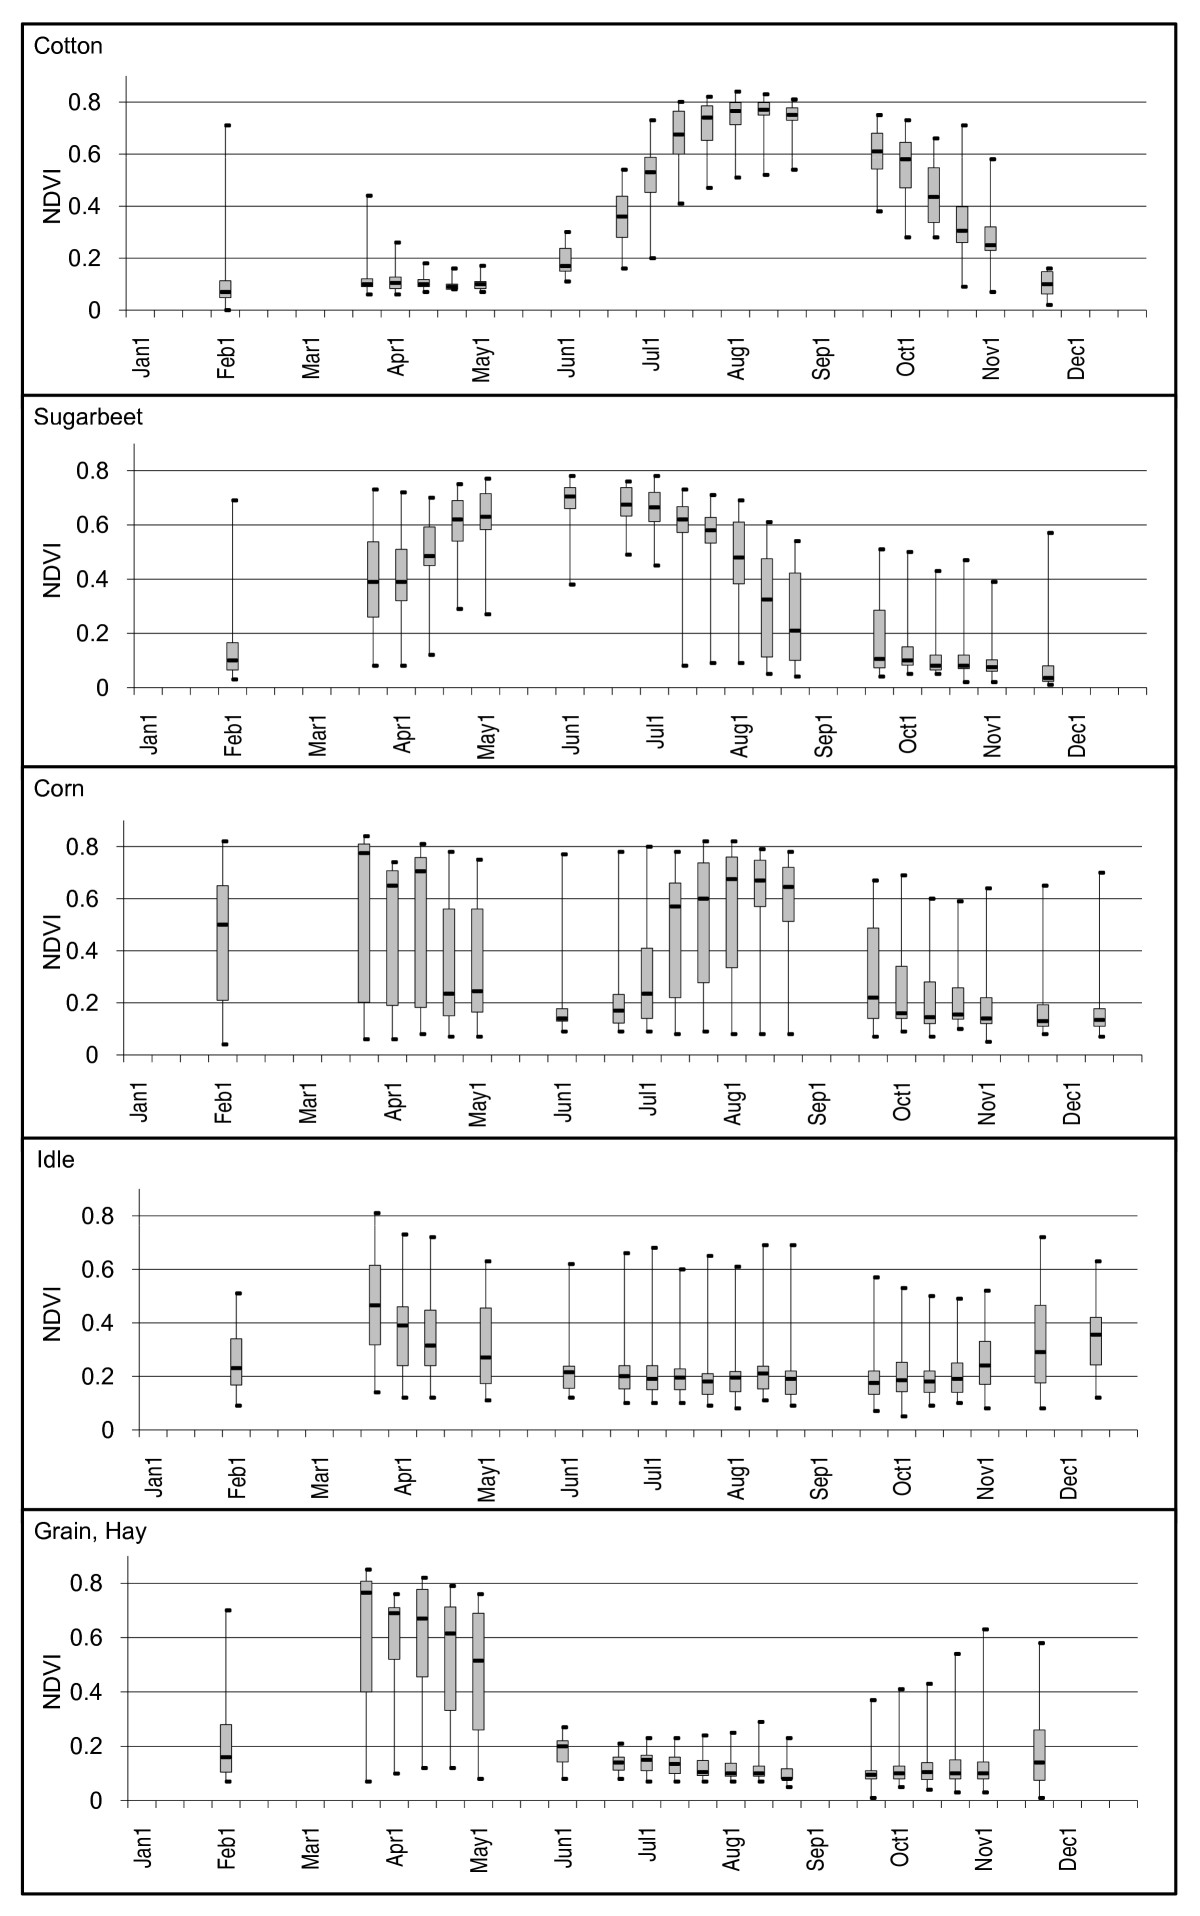 http://static-content.springer.com/image/art%3A10.1186%2F1476-072X-9-46/MediaObjects/12942_2010_Article_379_Fig2_HTML.jpg